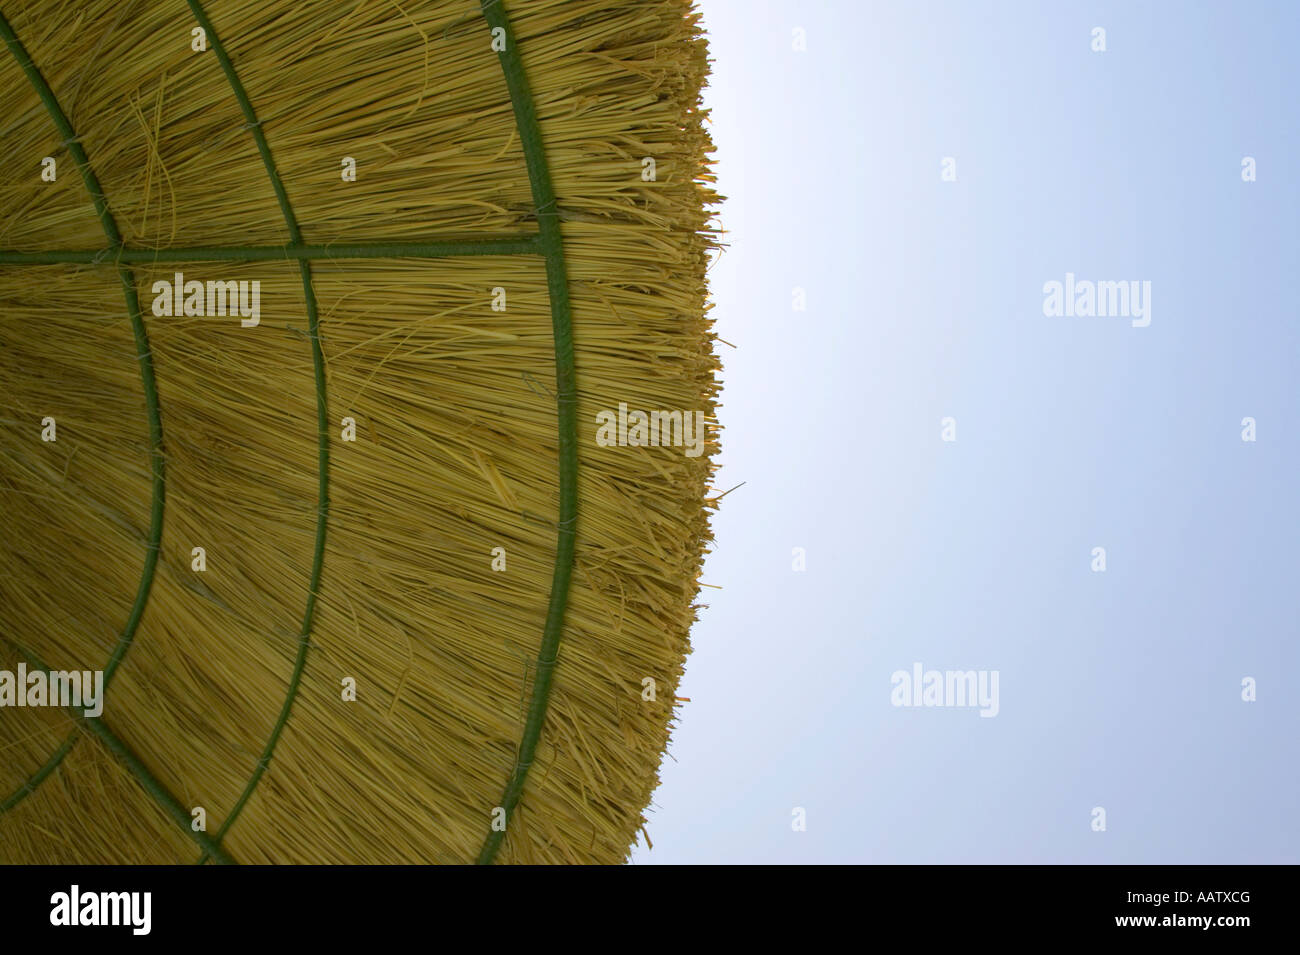 edge of straw parasol protecting against harmful UV rays from the sun blue sky - Stock Image